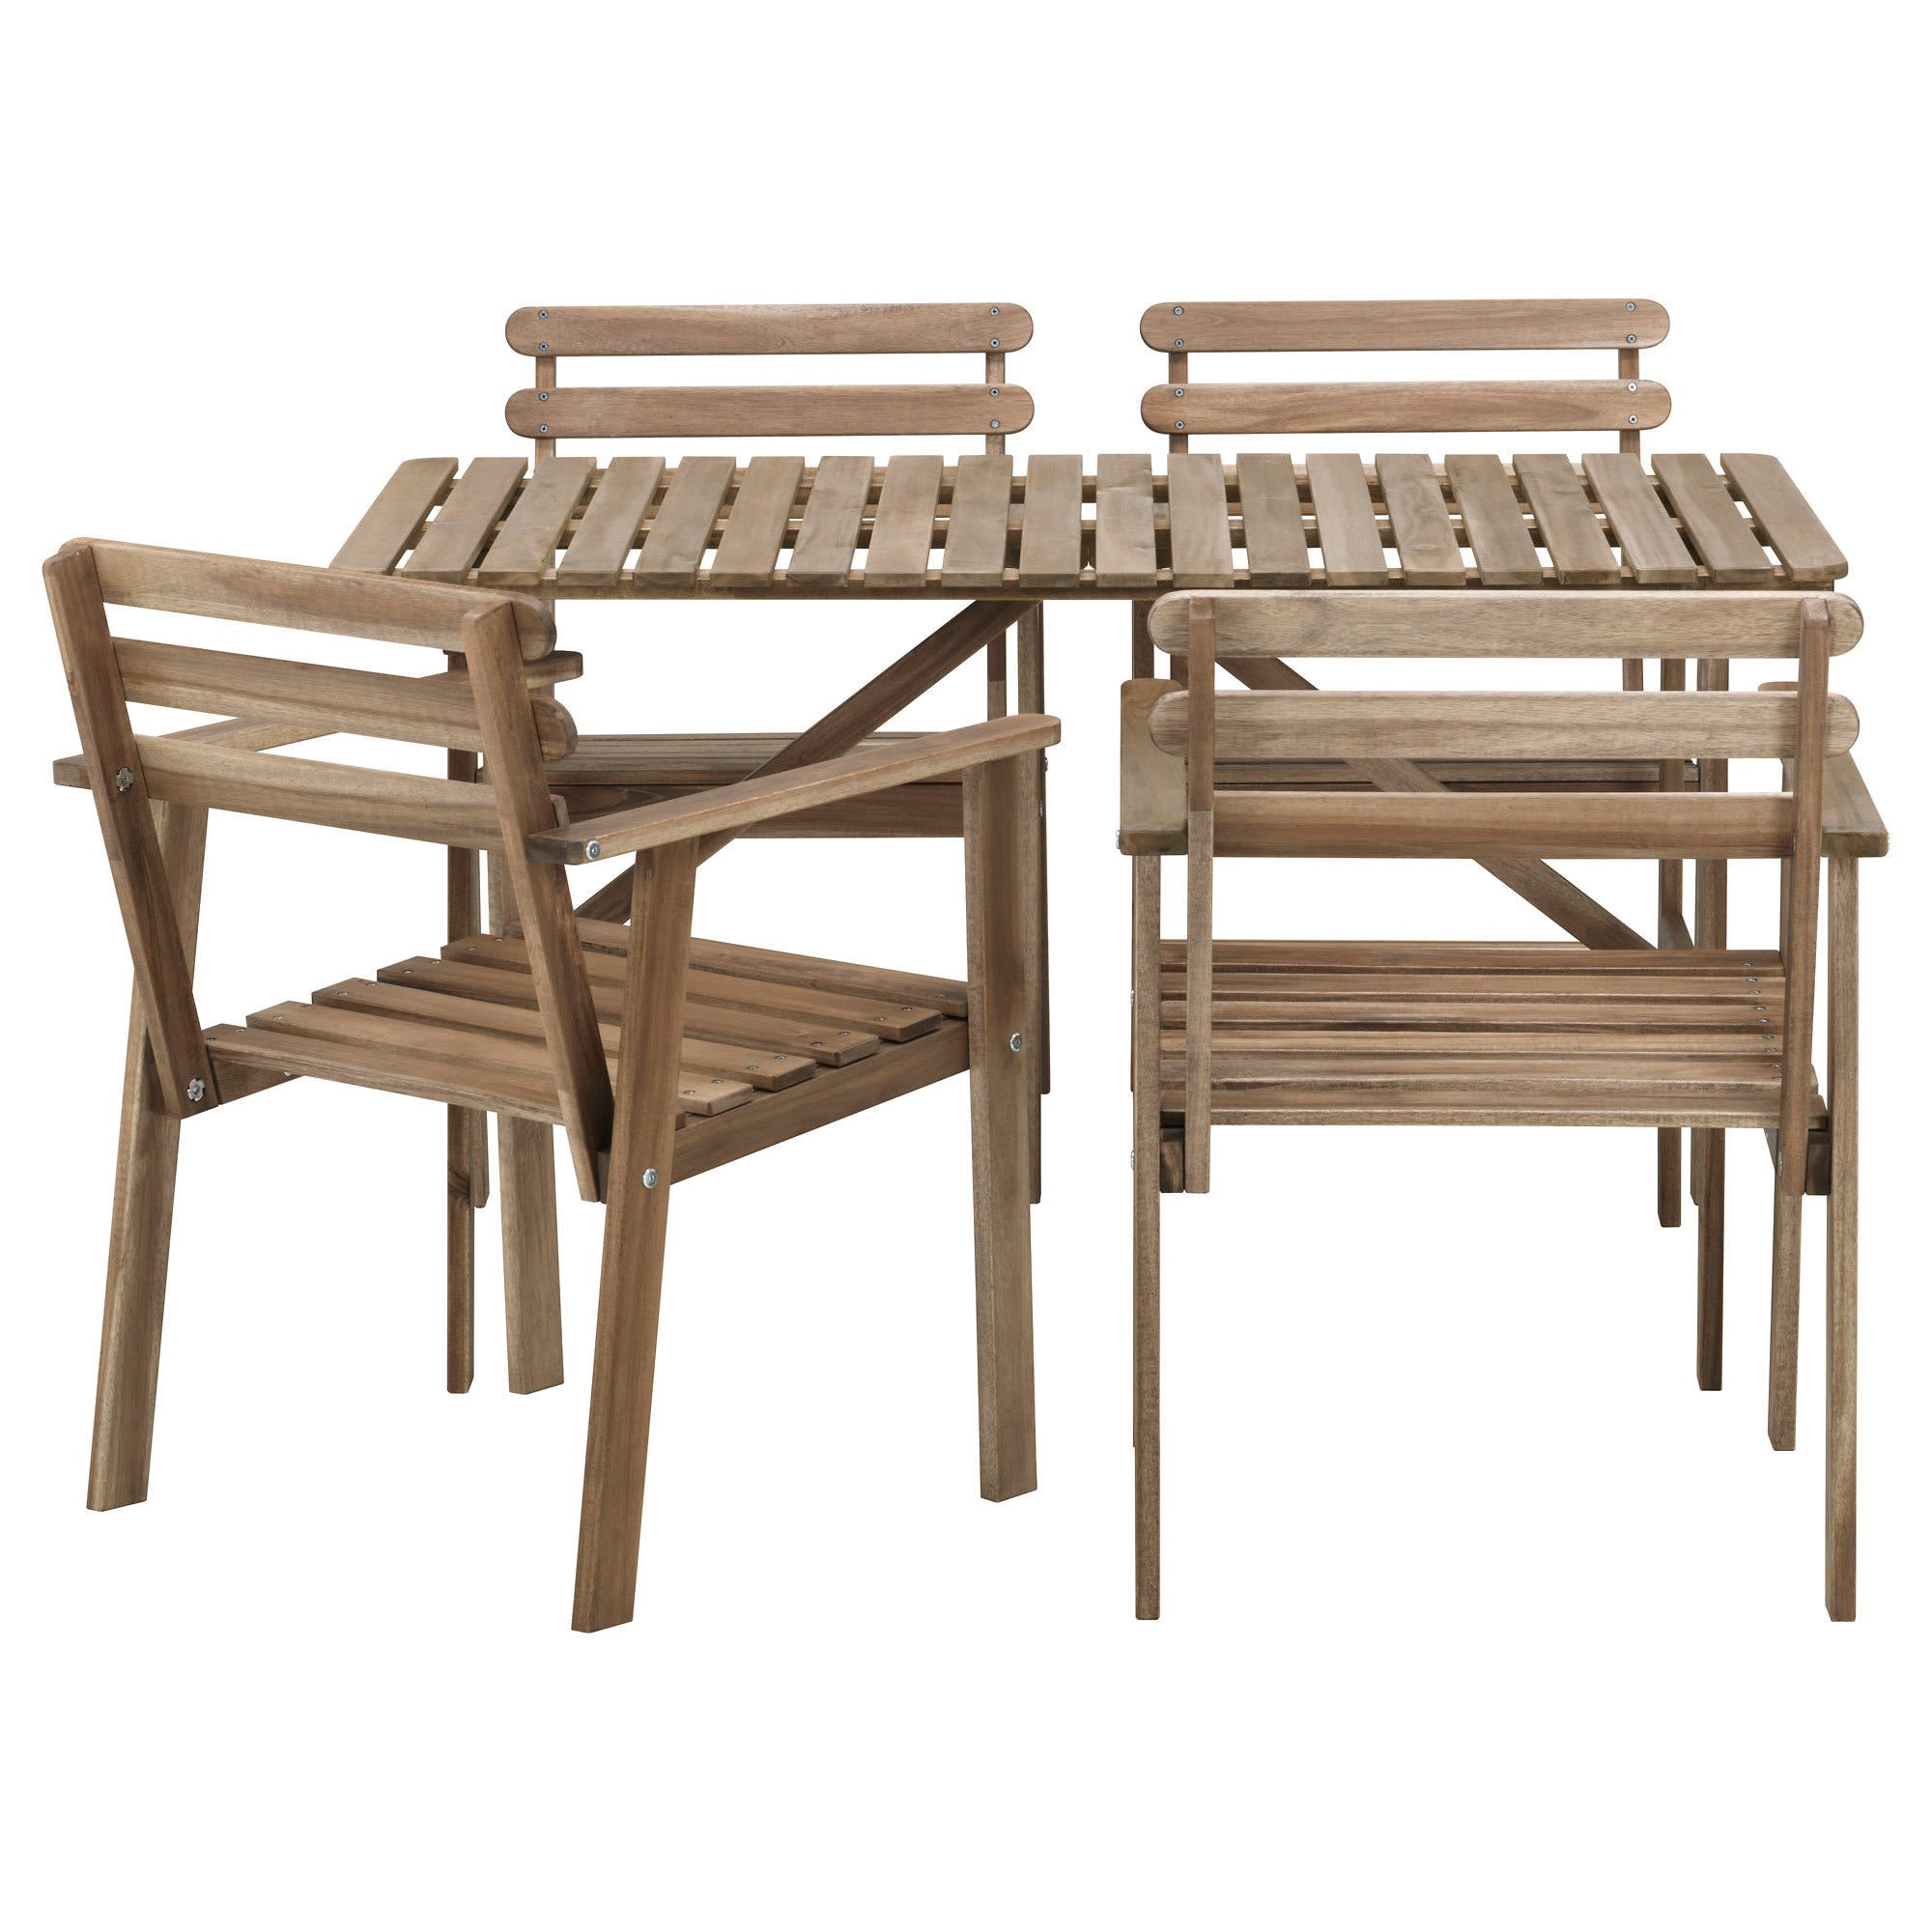 Awe Inspiring 10 Outdoor Dining Tables Dining Sets Under 300 Kitchn Ncnpc Chair Design For Home Ncnpcorg